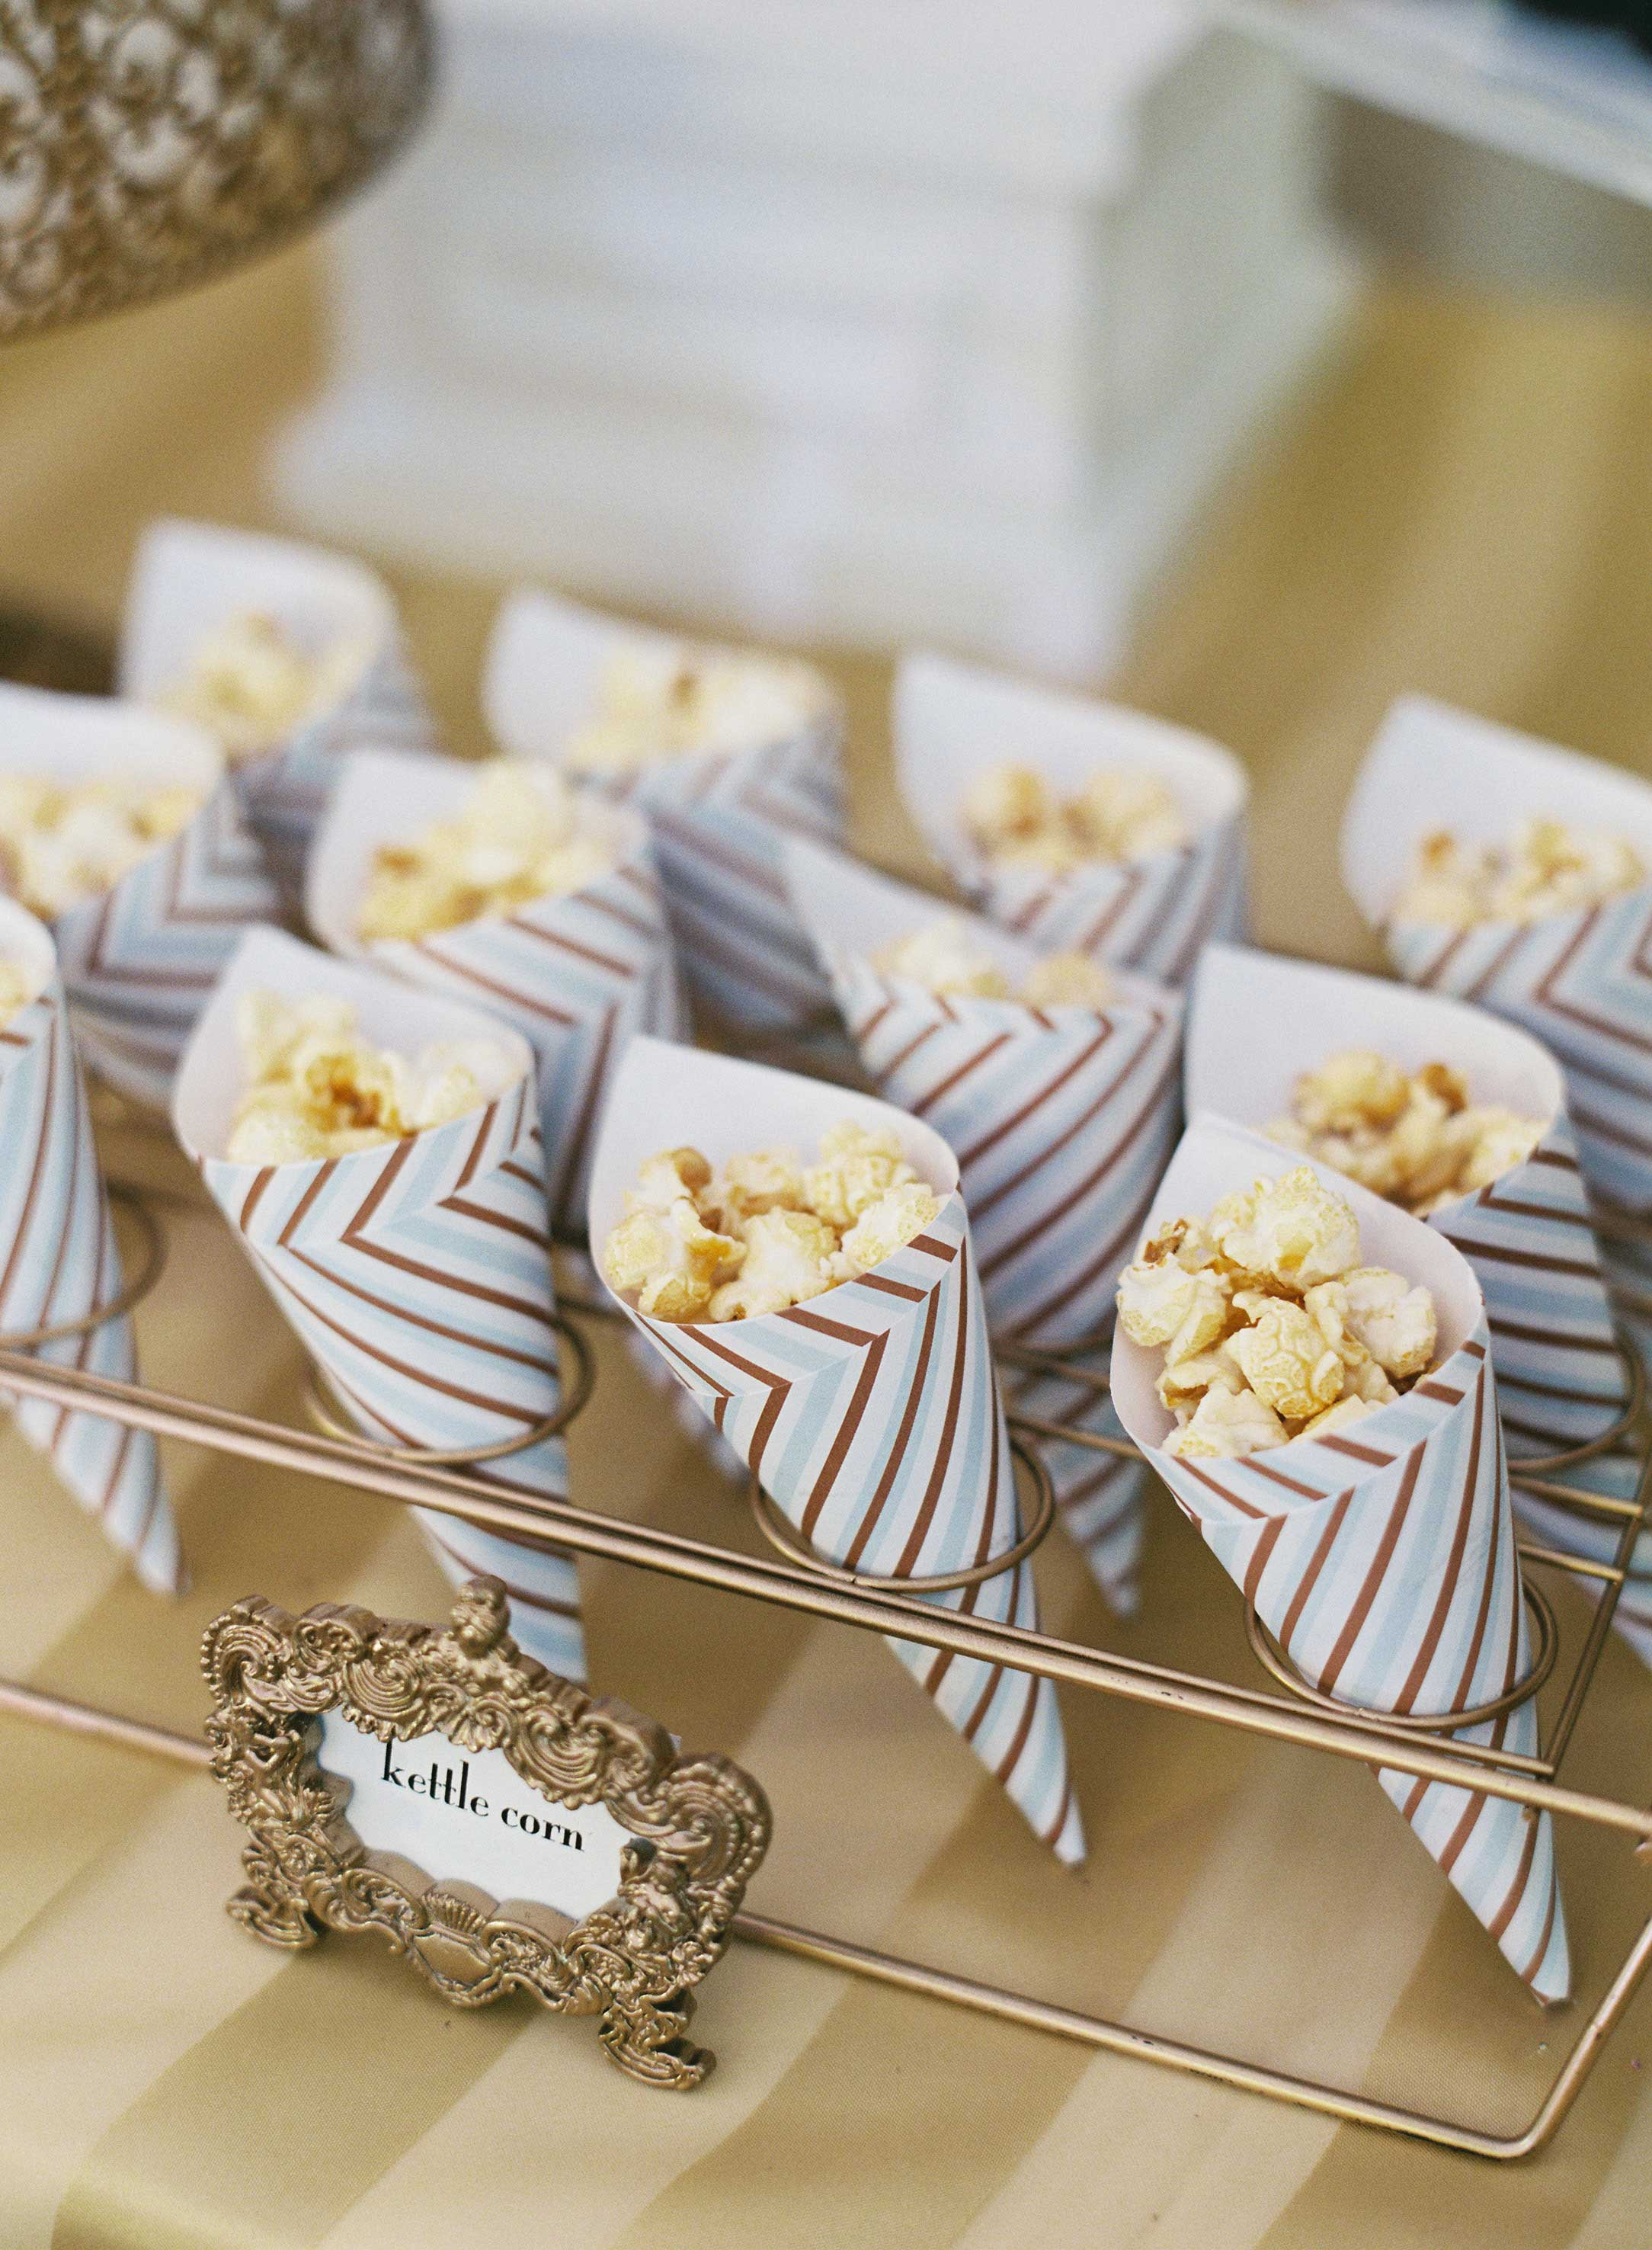 cute wedding dessert snack option popcorn and kettle corn in striped cones